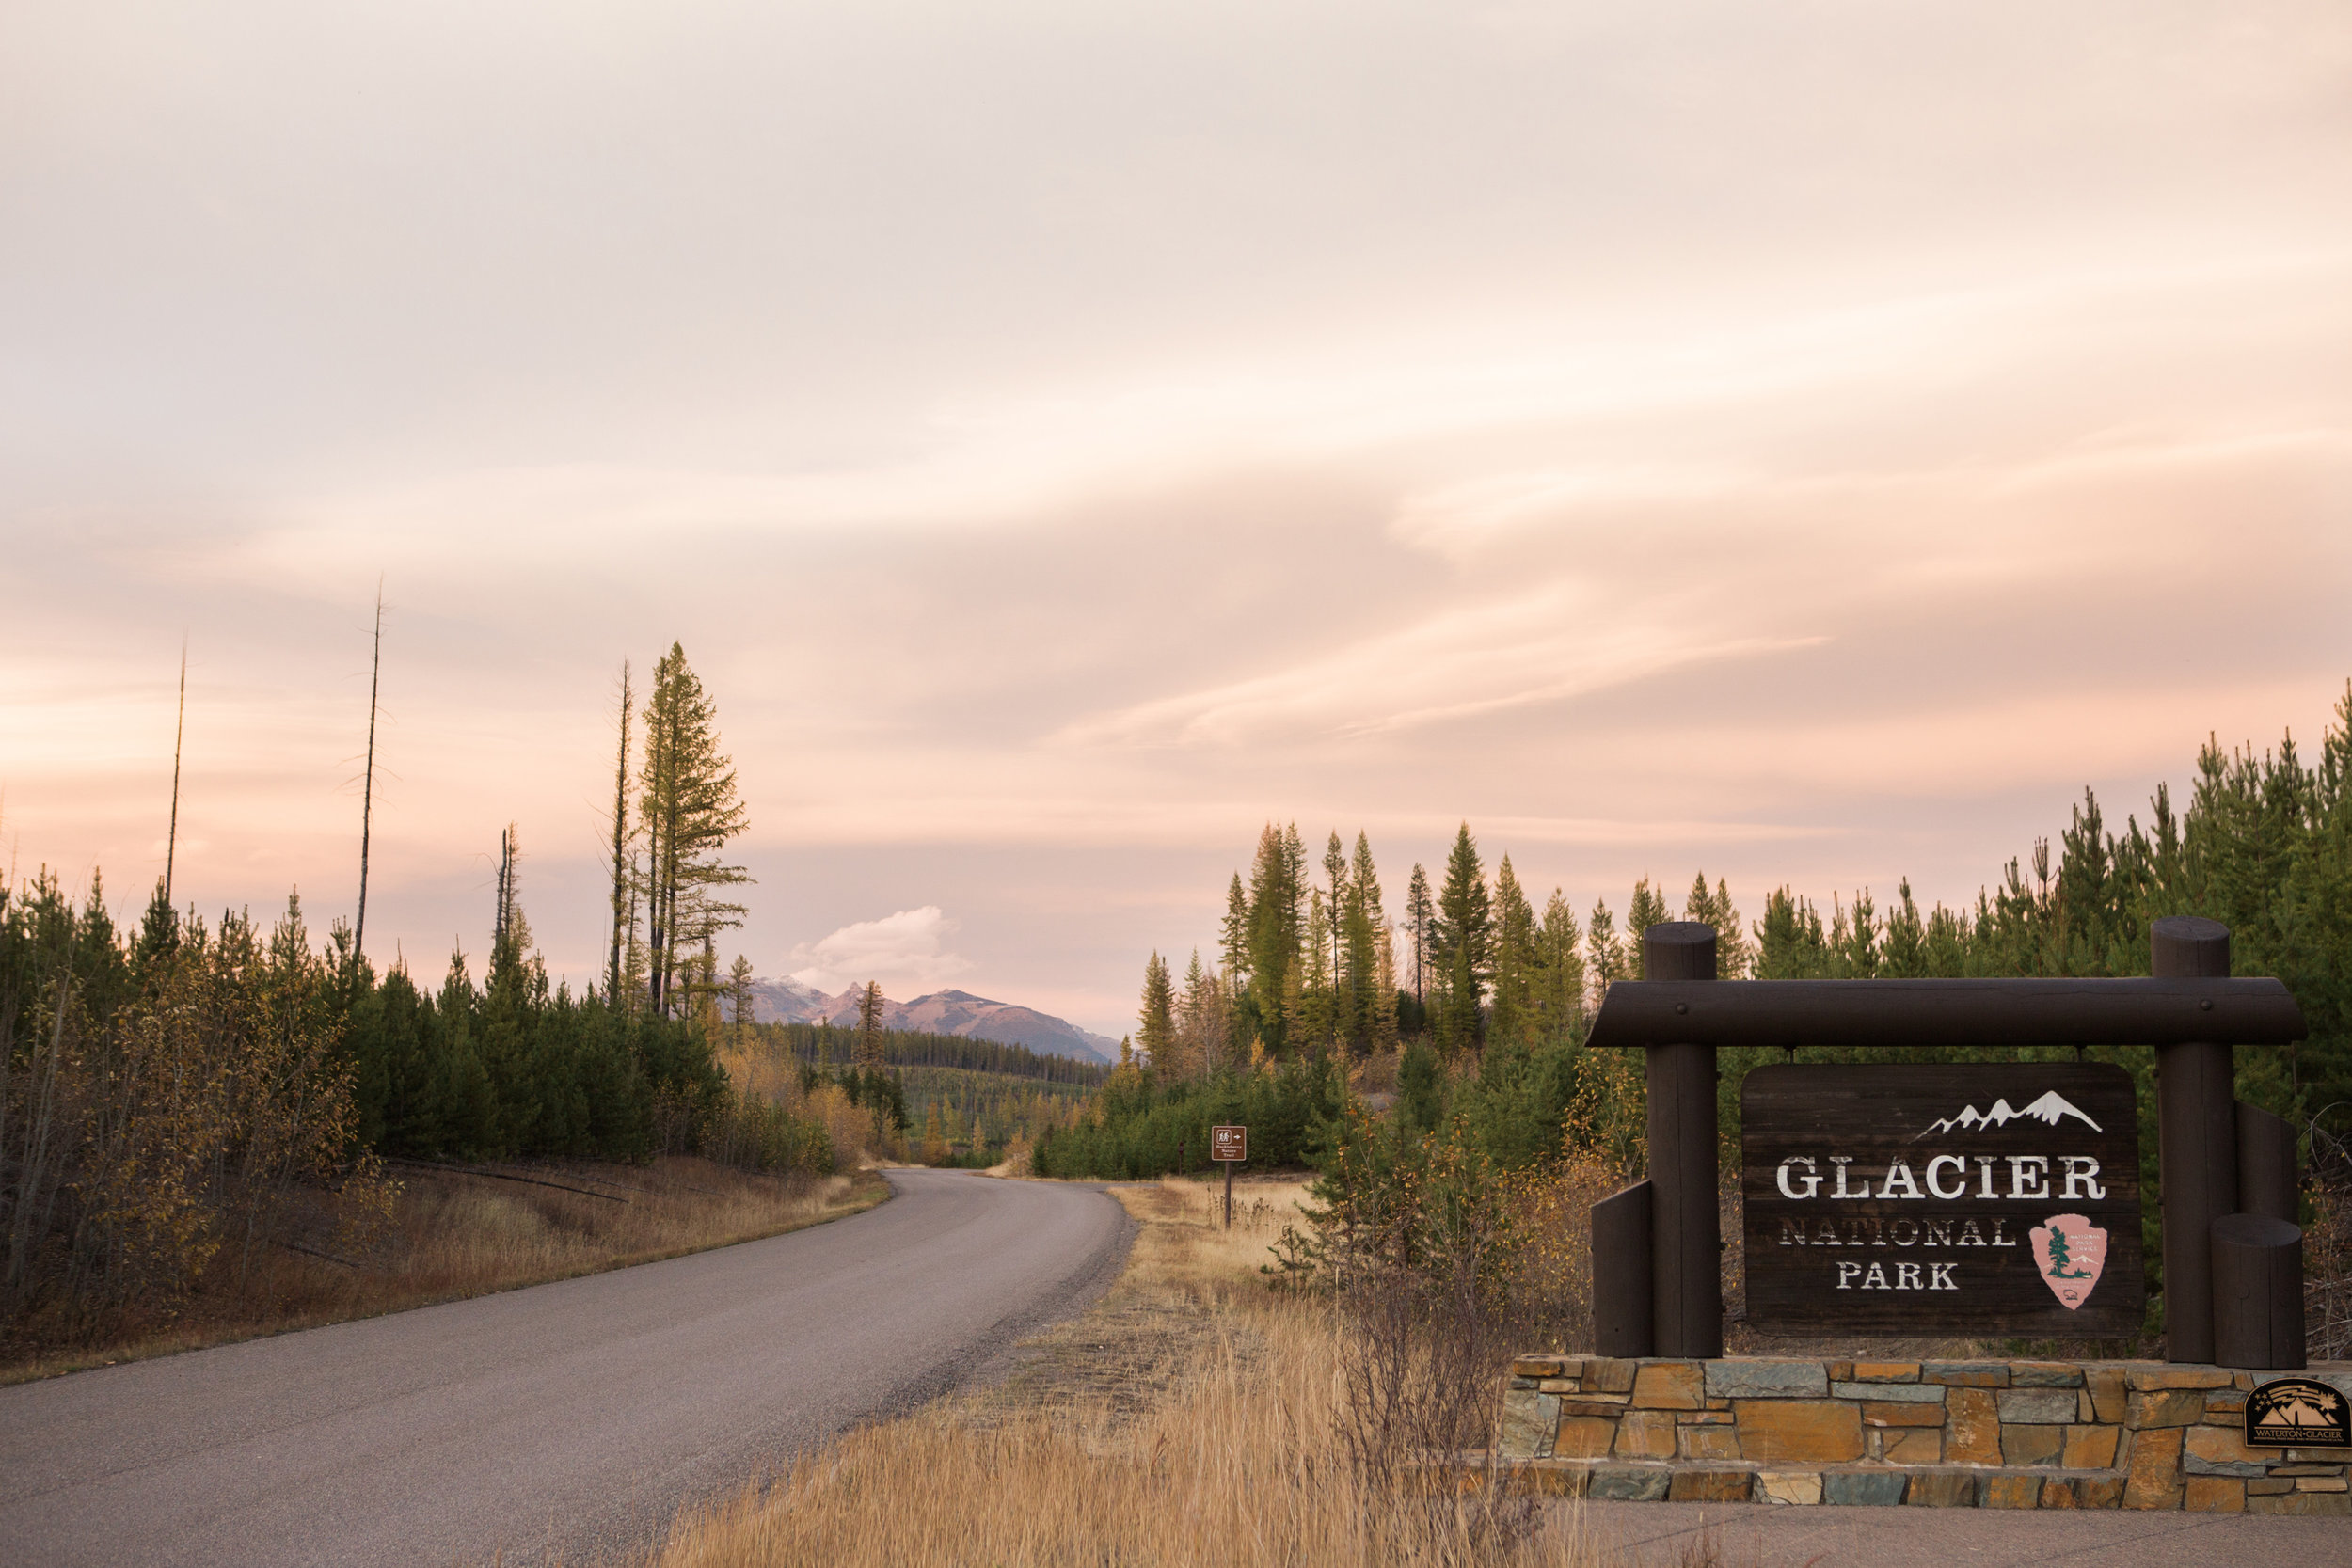 CindyGiovagnoli_Glacier_National_Park_Montana_mountains_lake_fall_autumn_road_trip-017.jpg